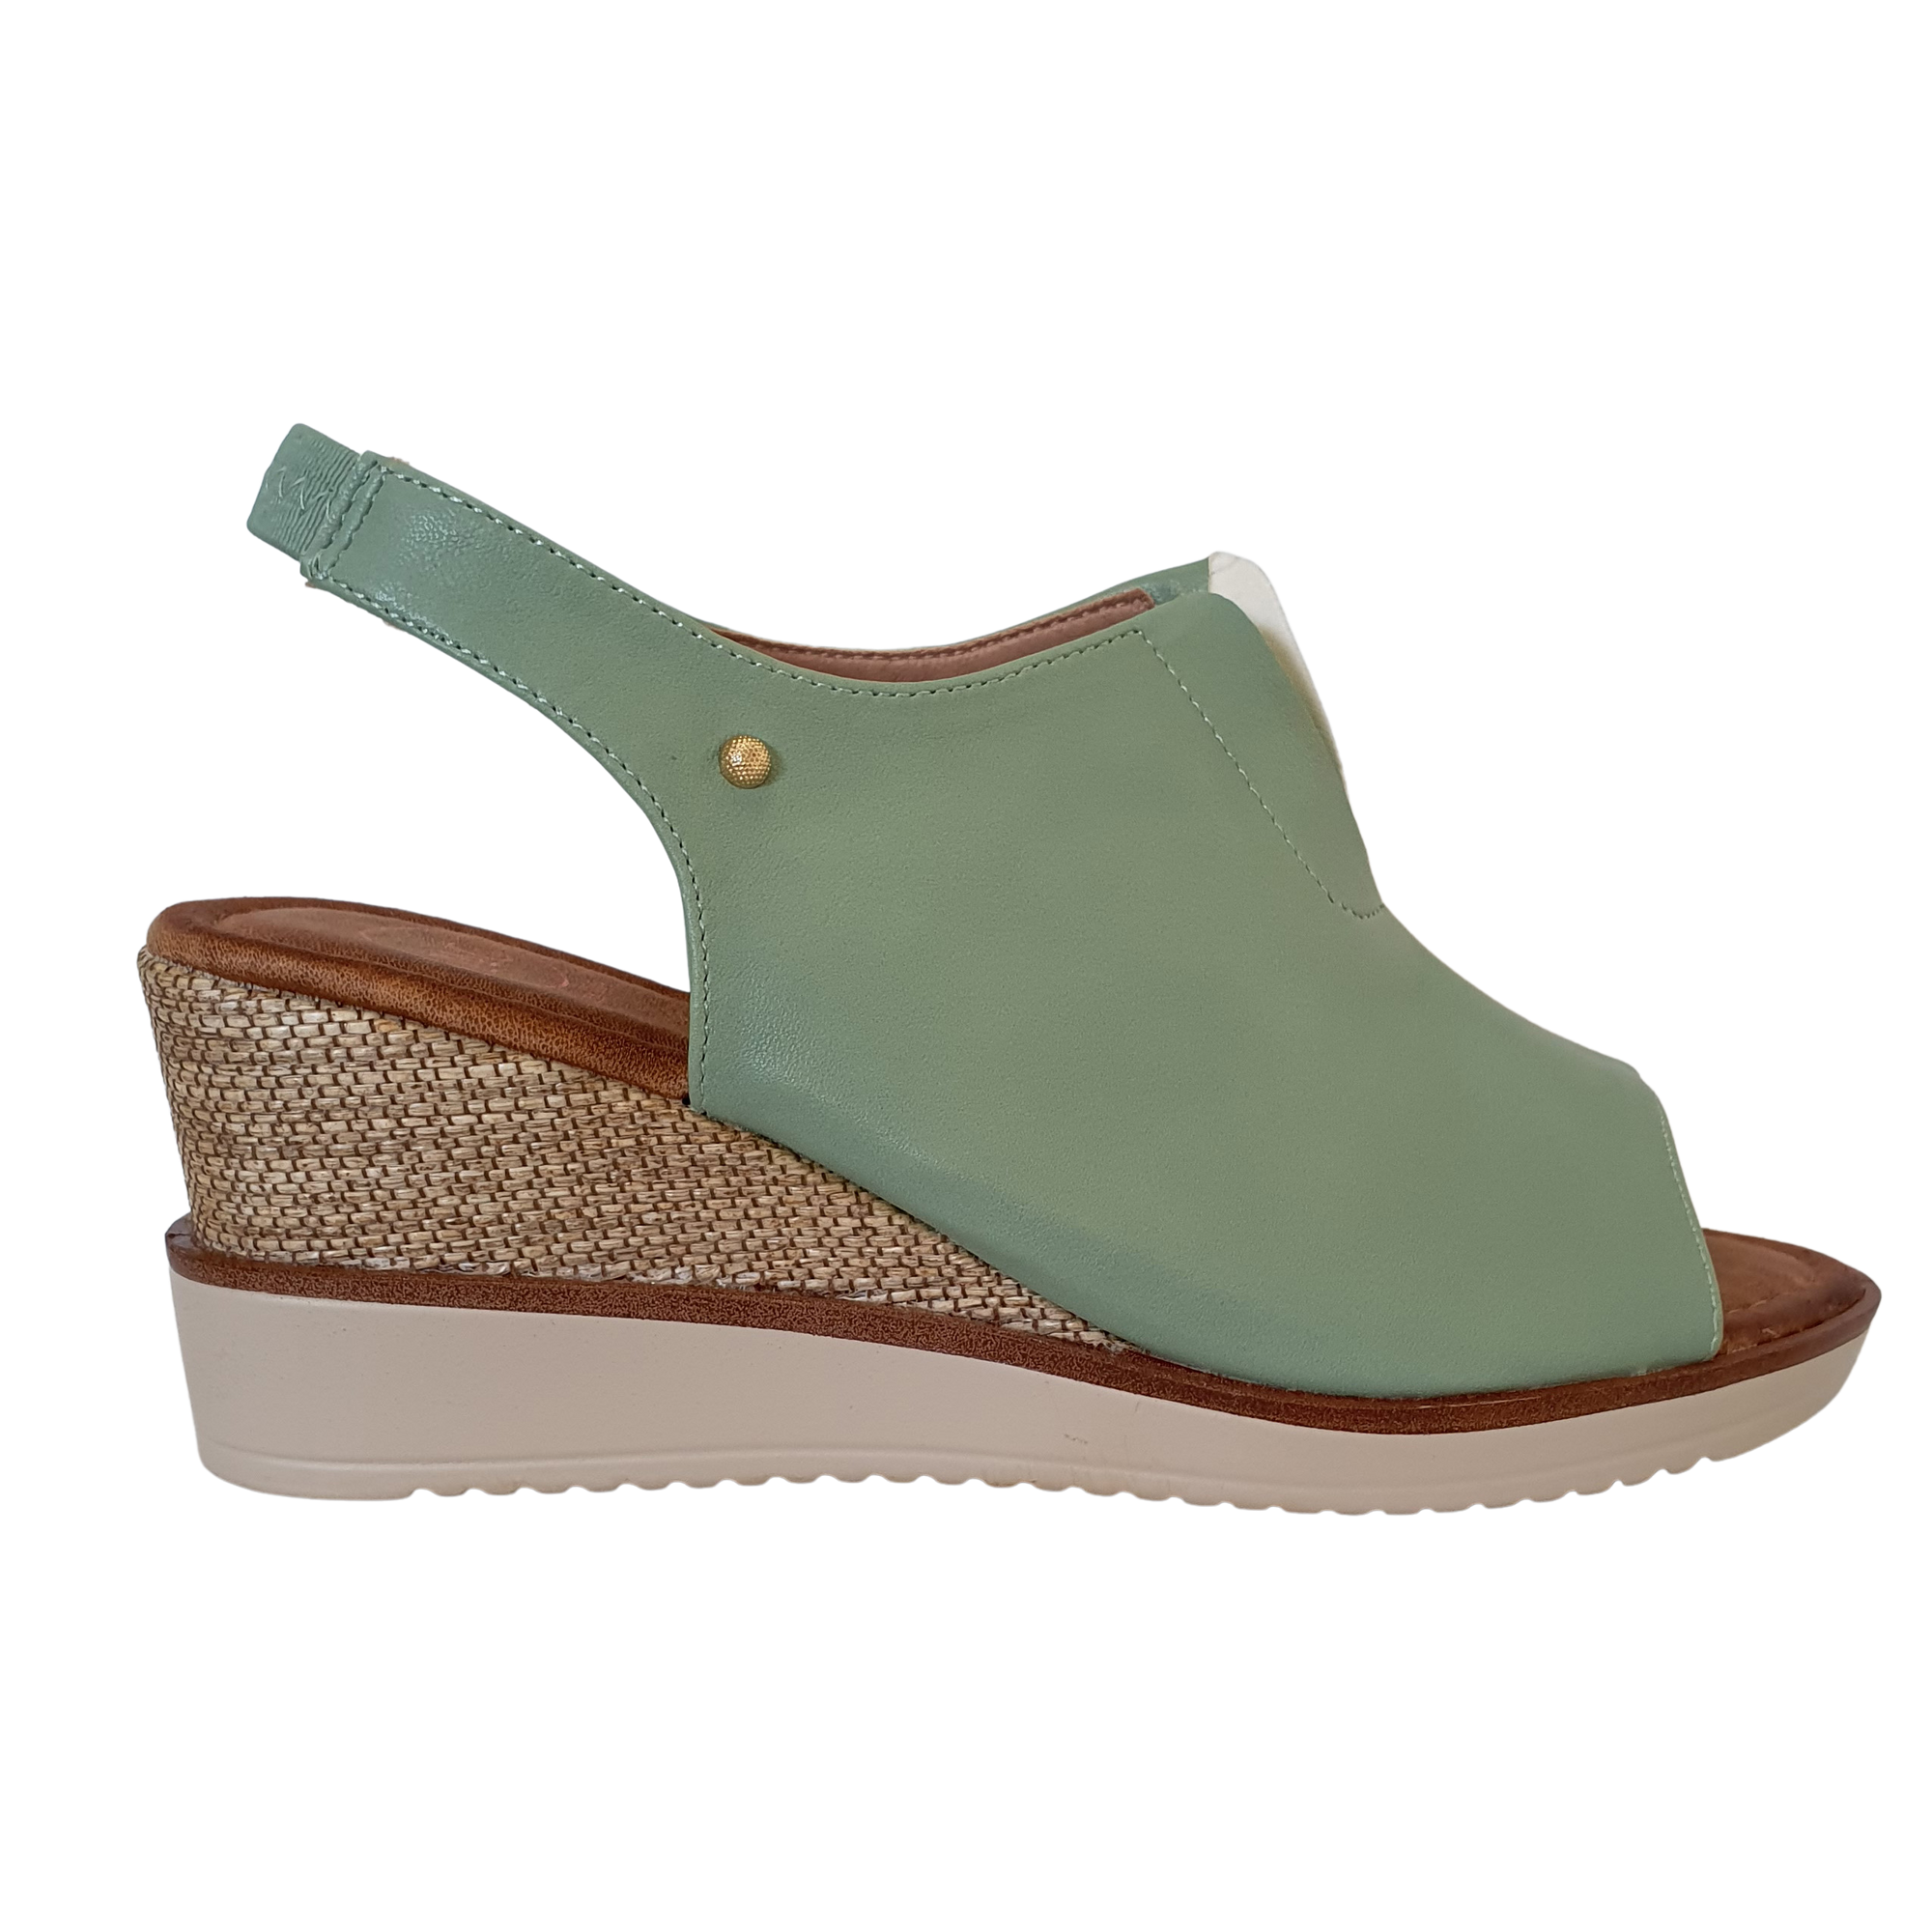 Zanni Wedge Sandals - Rahina - Green